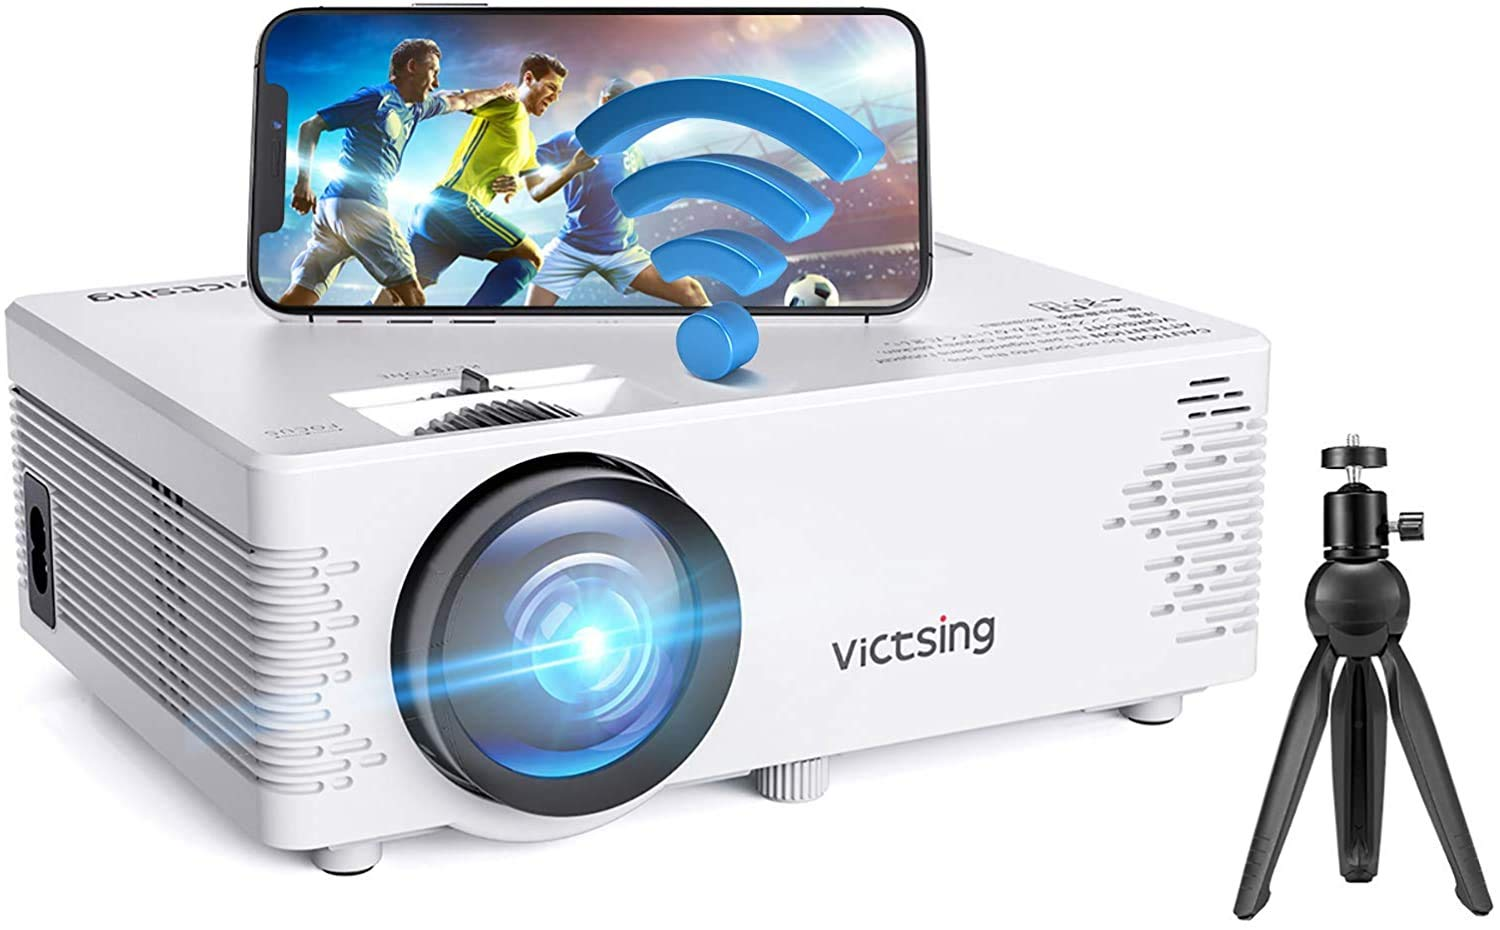 VicTsing WiFi Projector, 4200L Wireless Bluetooth Mini Projector with Tripod, 1080P 170'' Display Supported, Compatible with TV Stick, PS4, DVD, Portable Projector for Home Entertainment